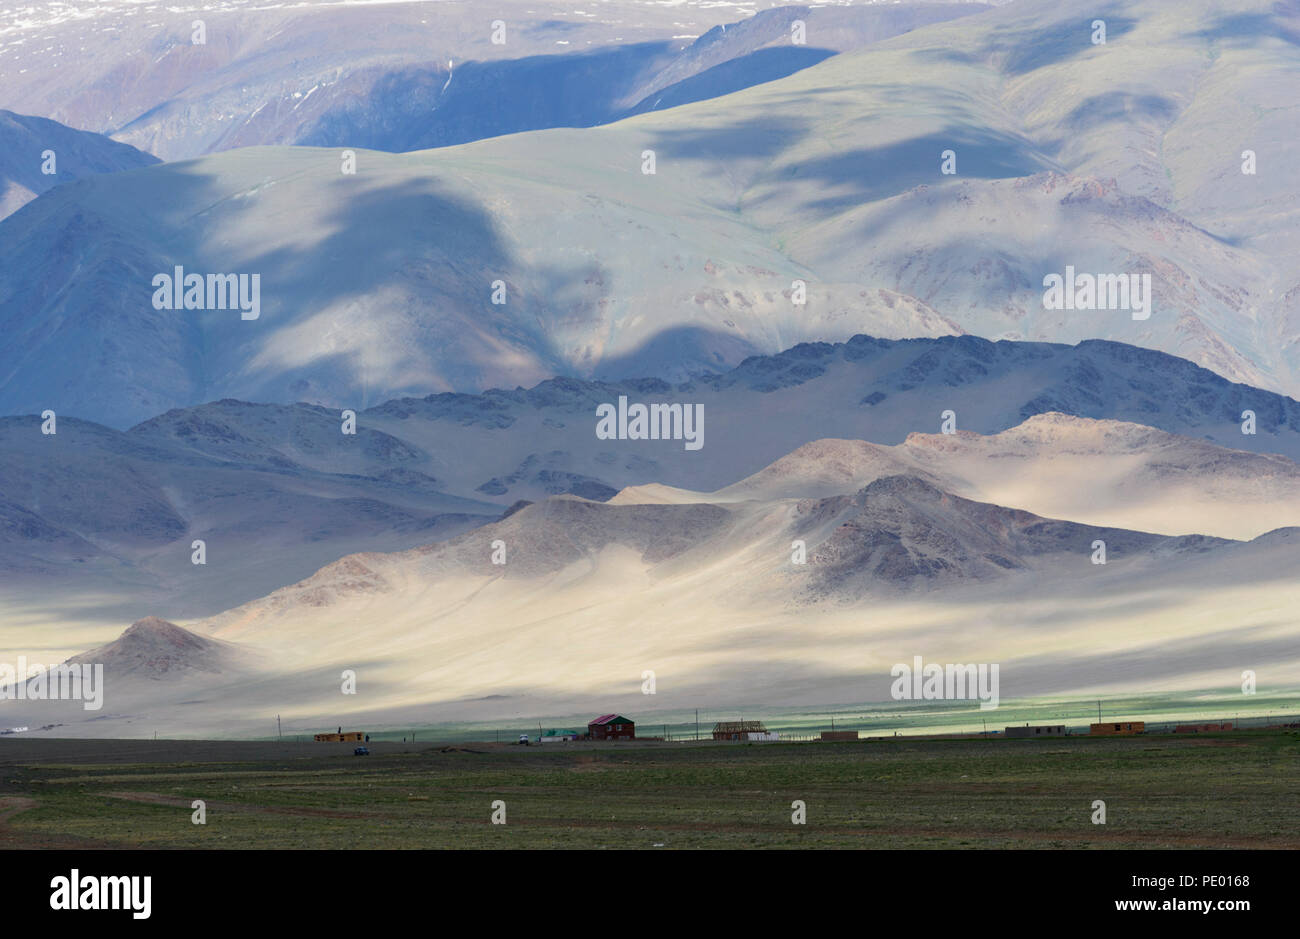 Landscape in the province Bayan-Ölgii, Mongolia. - Stock Image